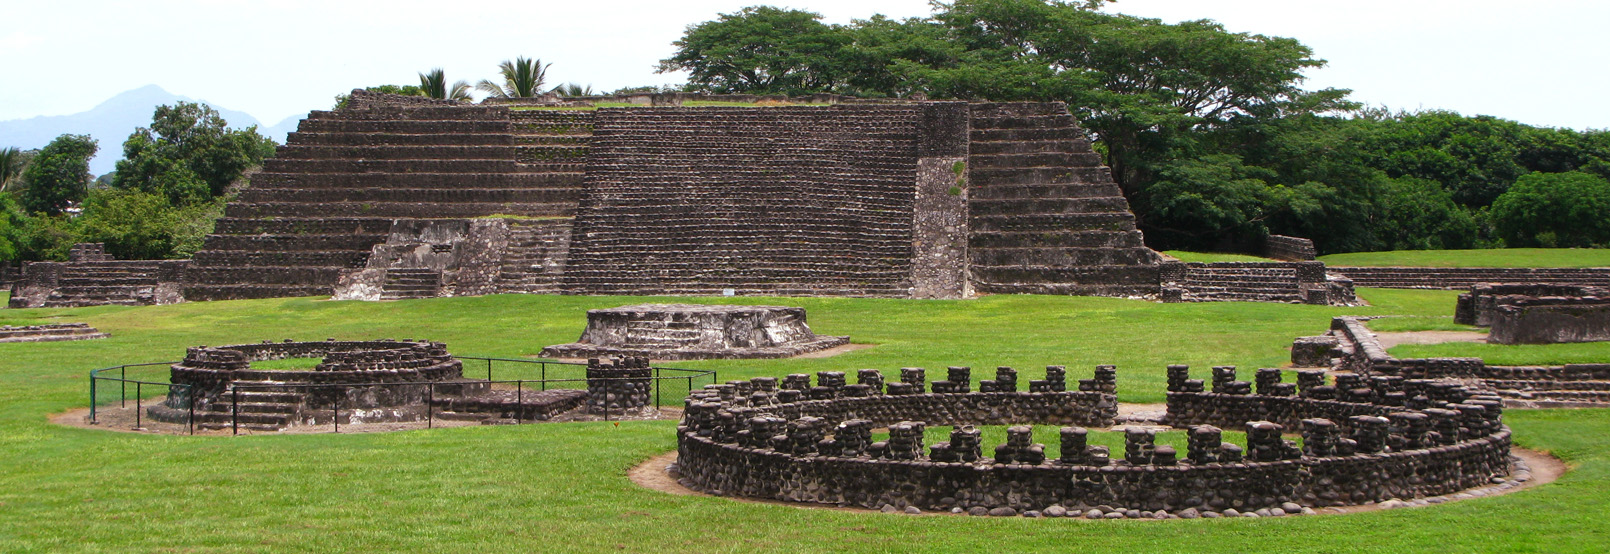 Cempoala - famous attractions in mexico